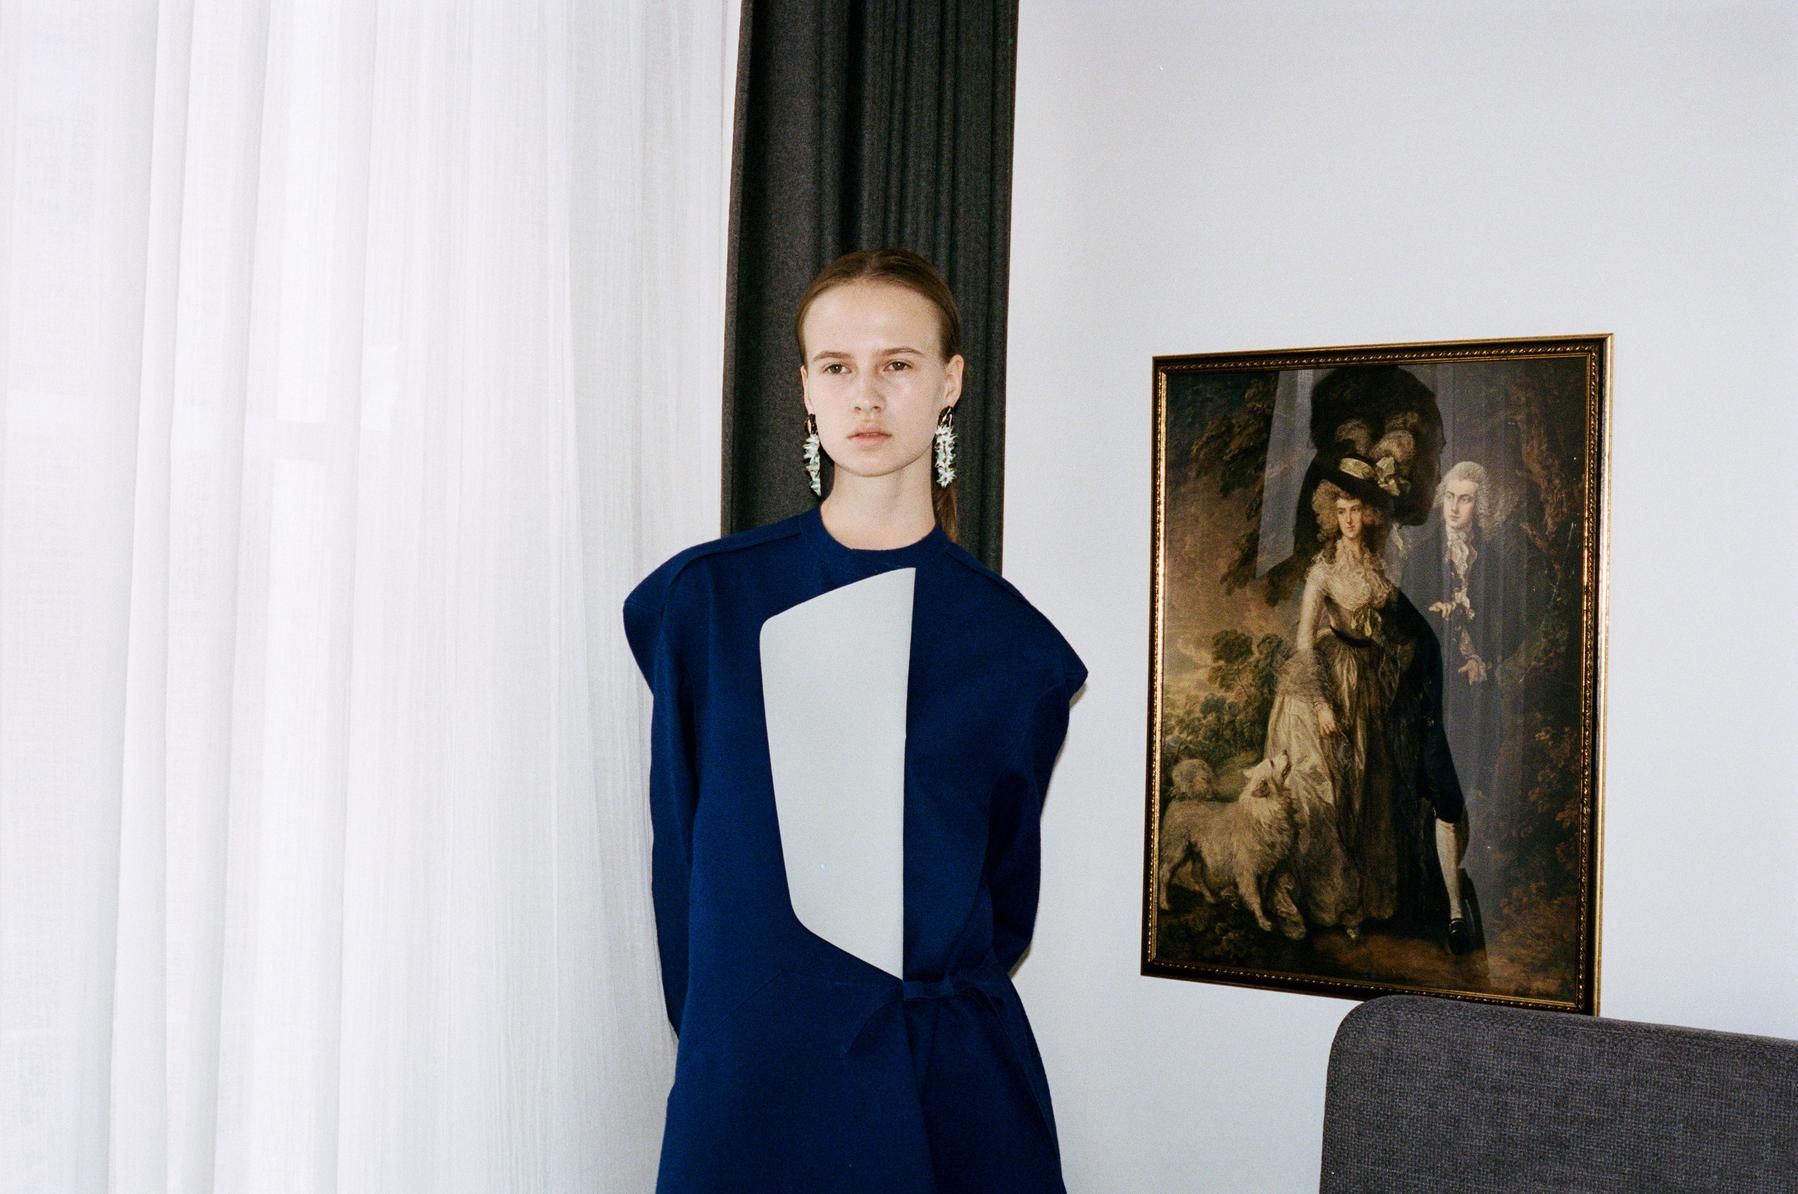 Out of the Box: Hanna Putz